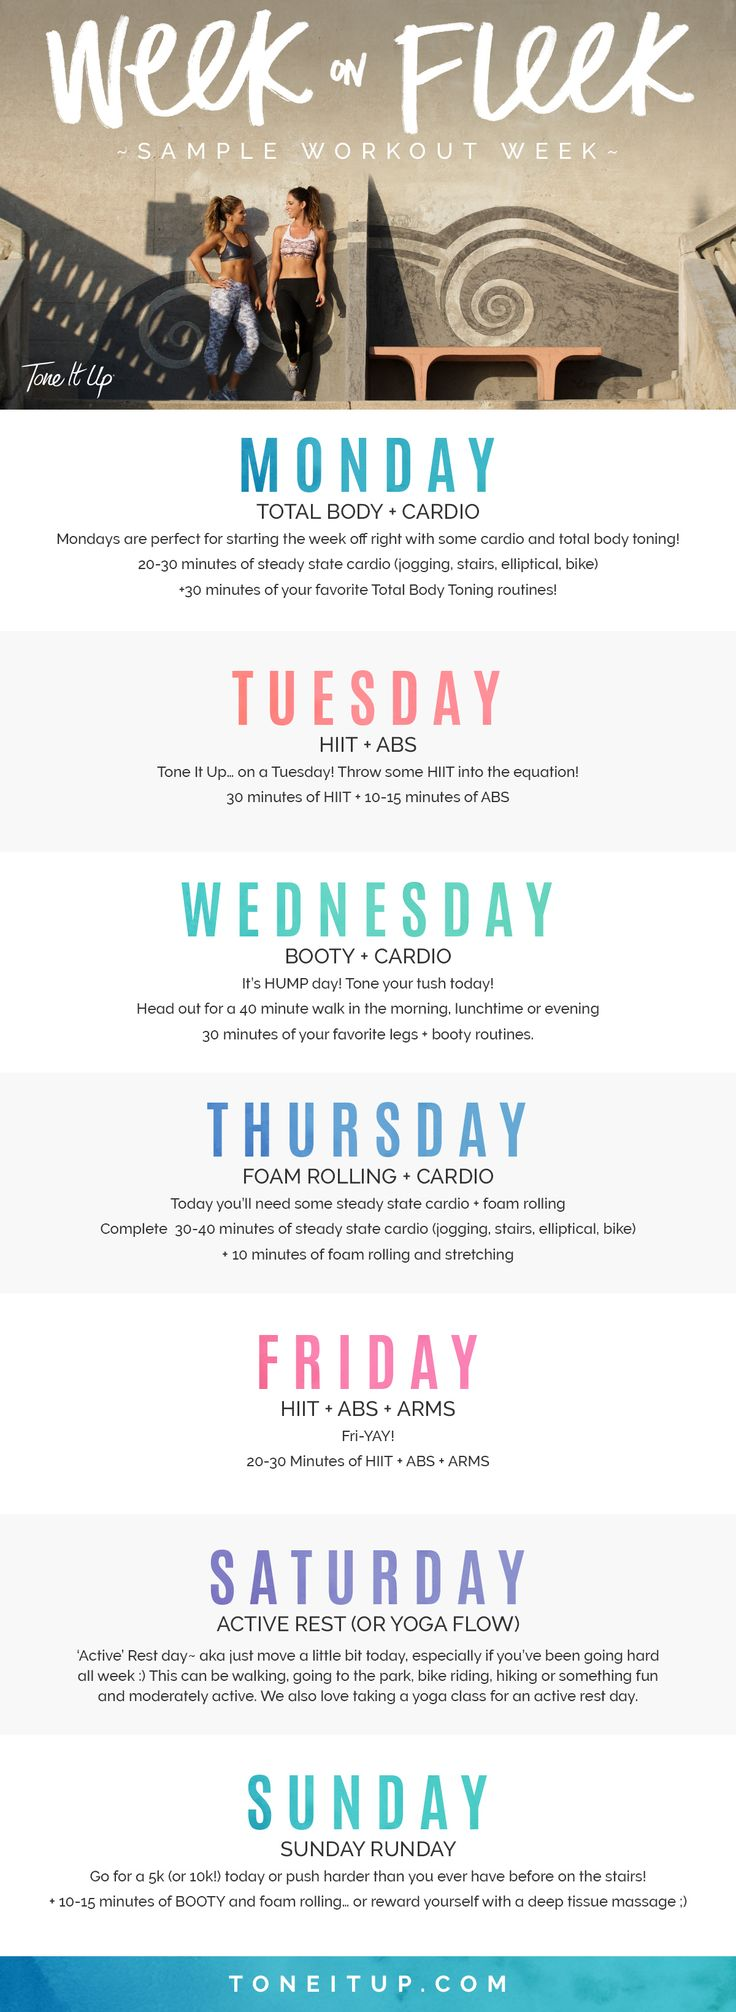 Ever wonder how often you should do cardio or HIIT?  For those of you who want a quick snapshot of an ideal week, we've got you! Take a look above for an easy to follow plan. The best part is that it can be customized with your fave routines! Be sure to check Tone It Up every Sunday for your Weekly Schedule!